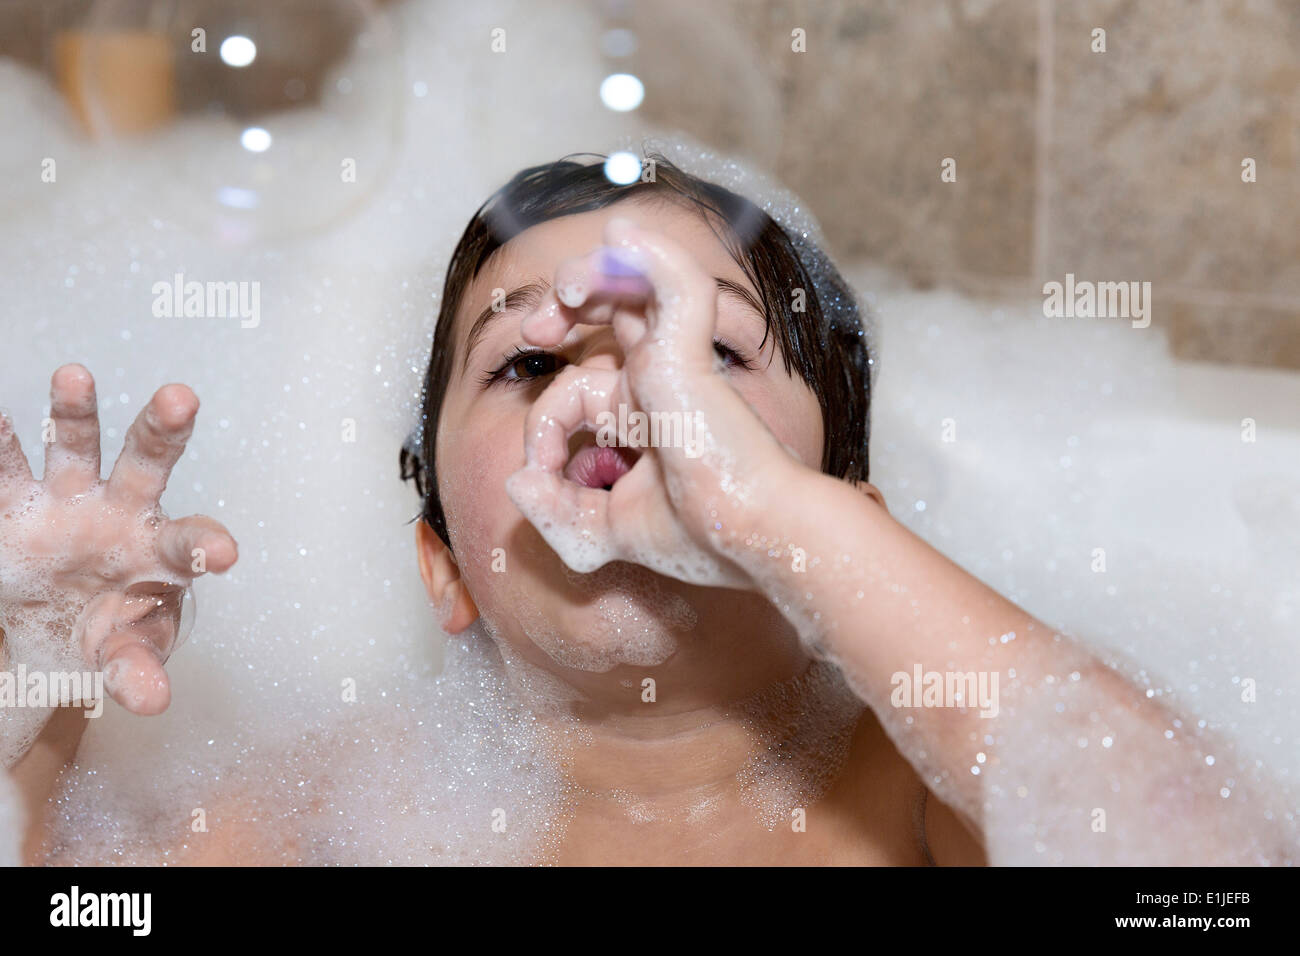 Young boy blowing bubbles in bubble bath - Stock Image